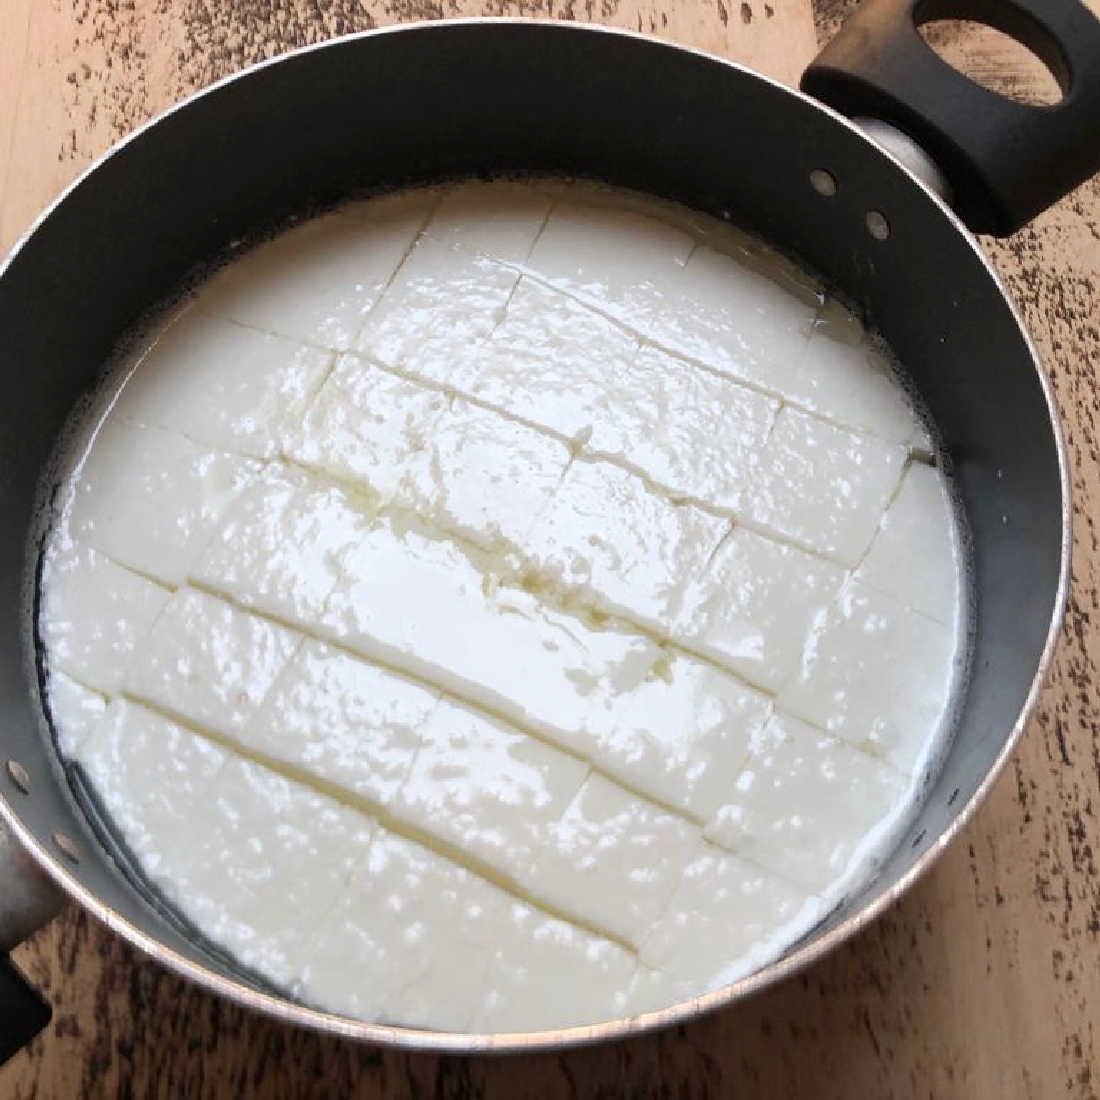 Cheesemaking-Jen-Cutting-the-Curd-low-resvApnZmHIEzhck